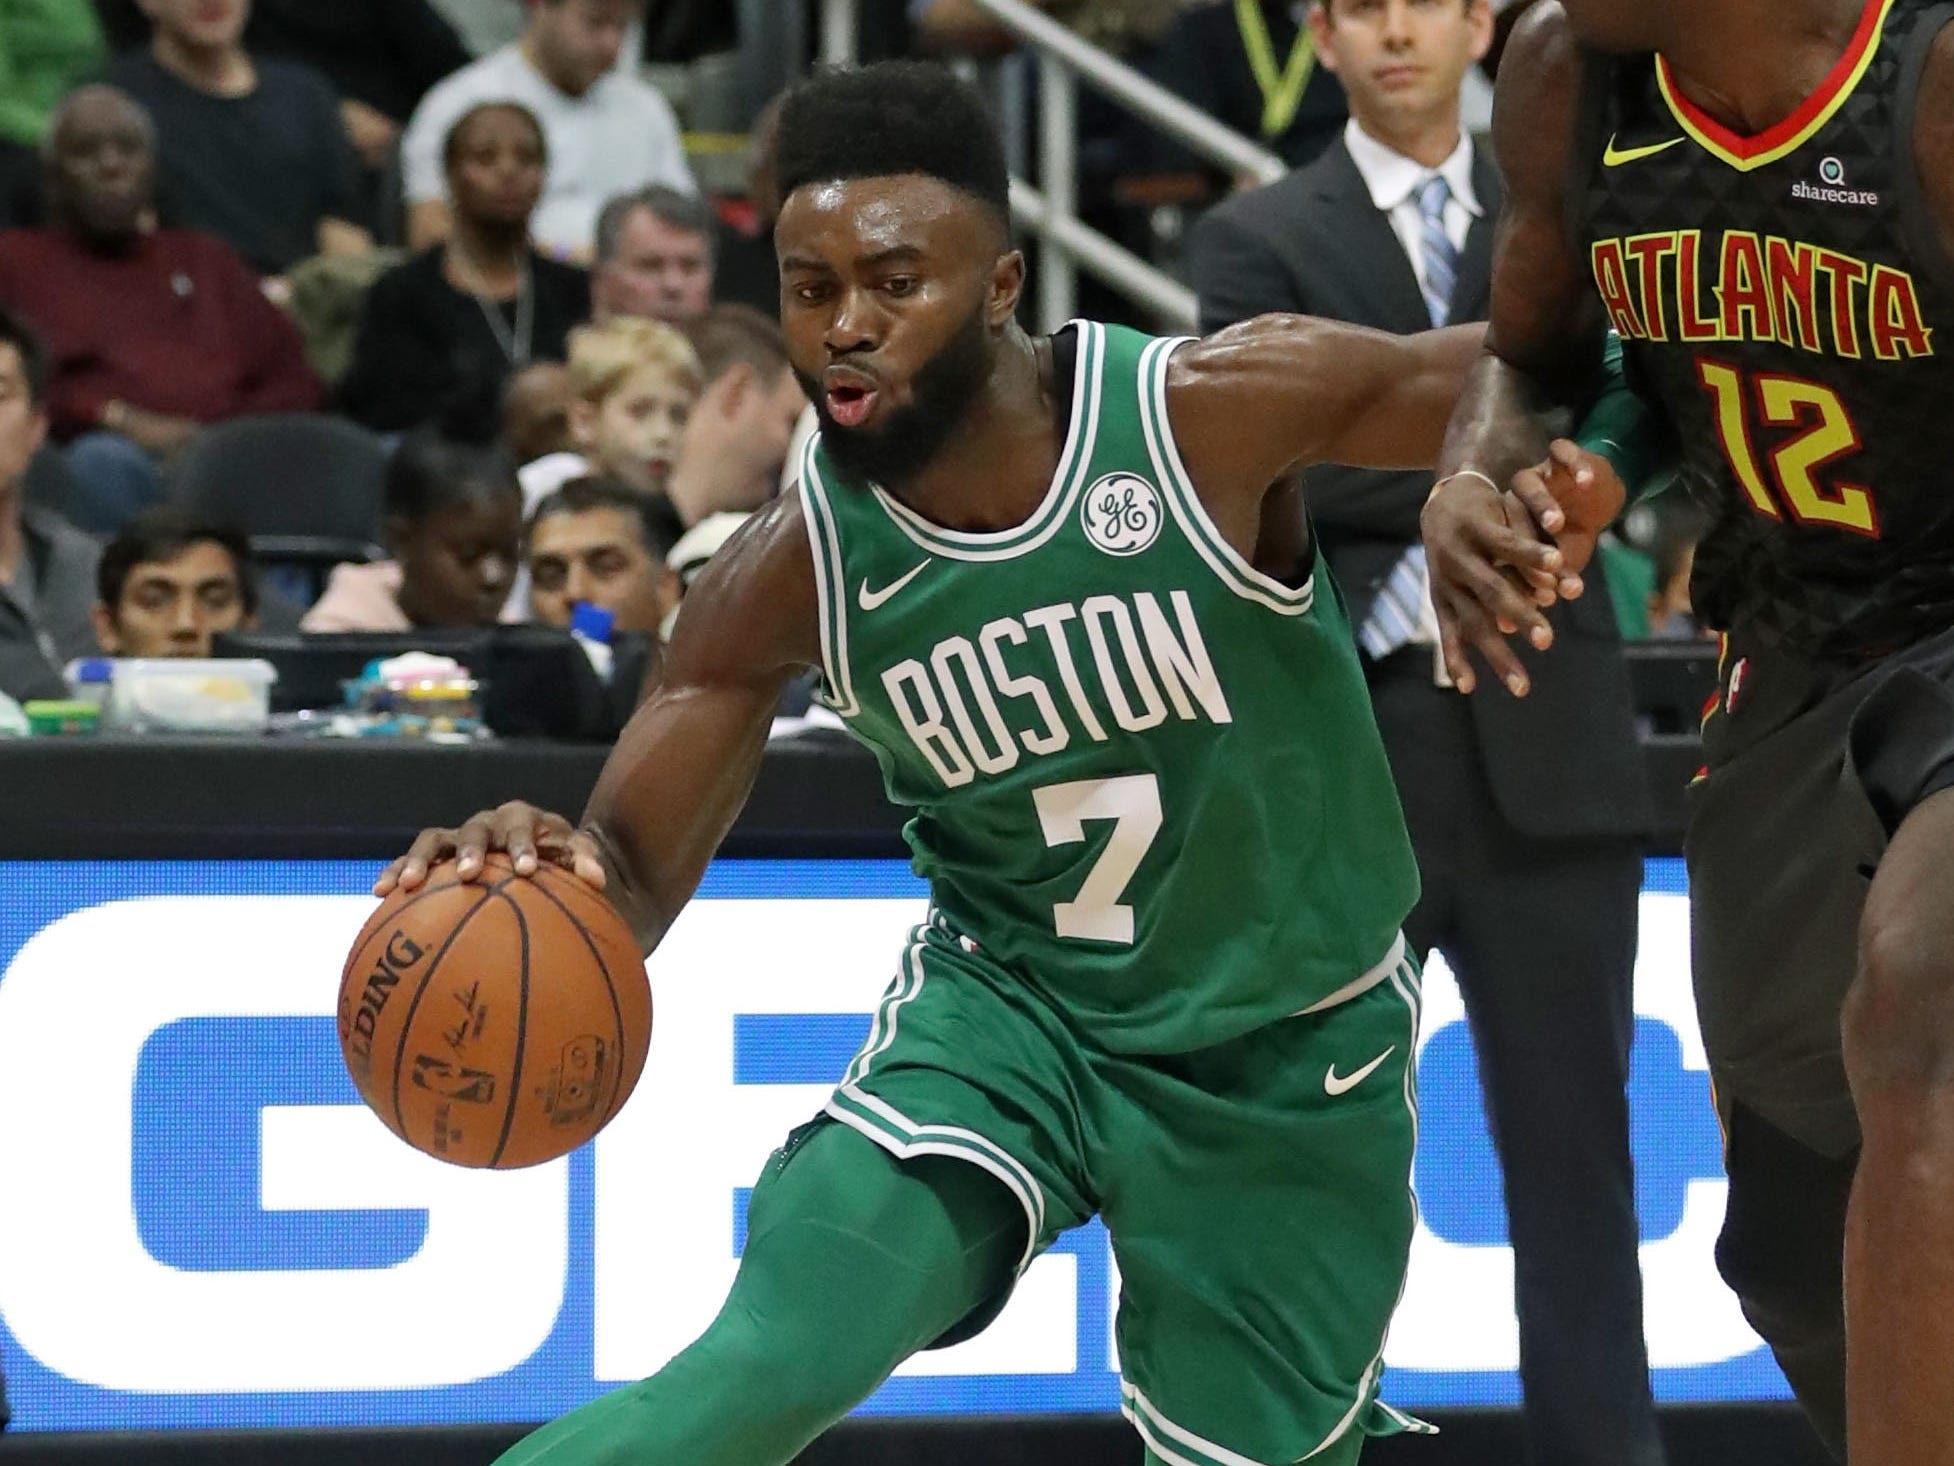 Jaylen Brown, Boston Celtics — 22 (born 10/24/1996)